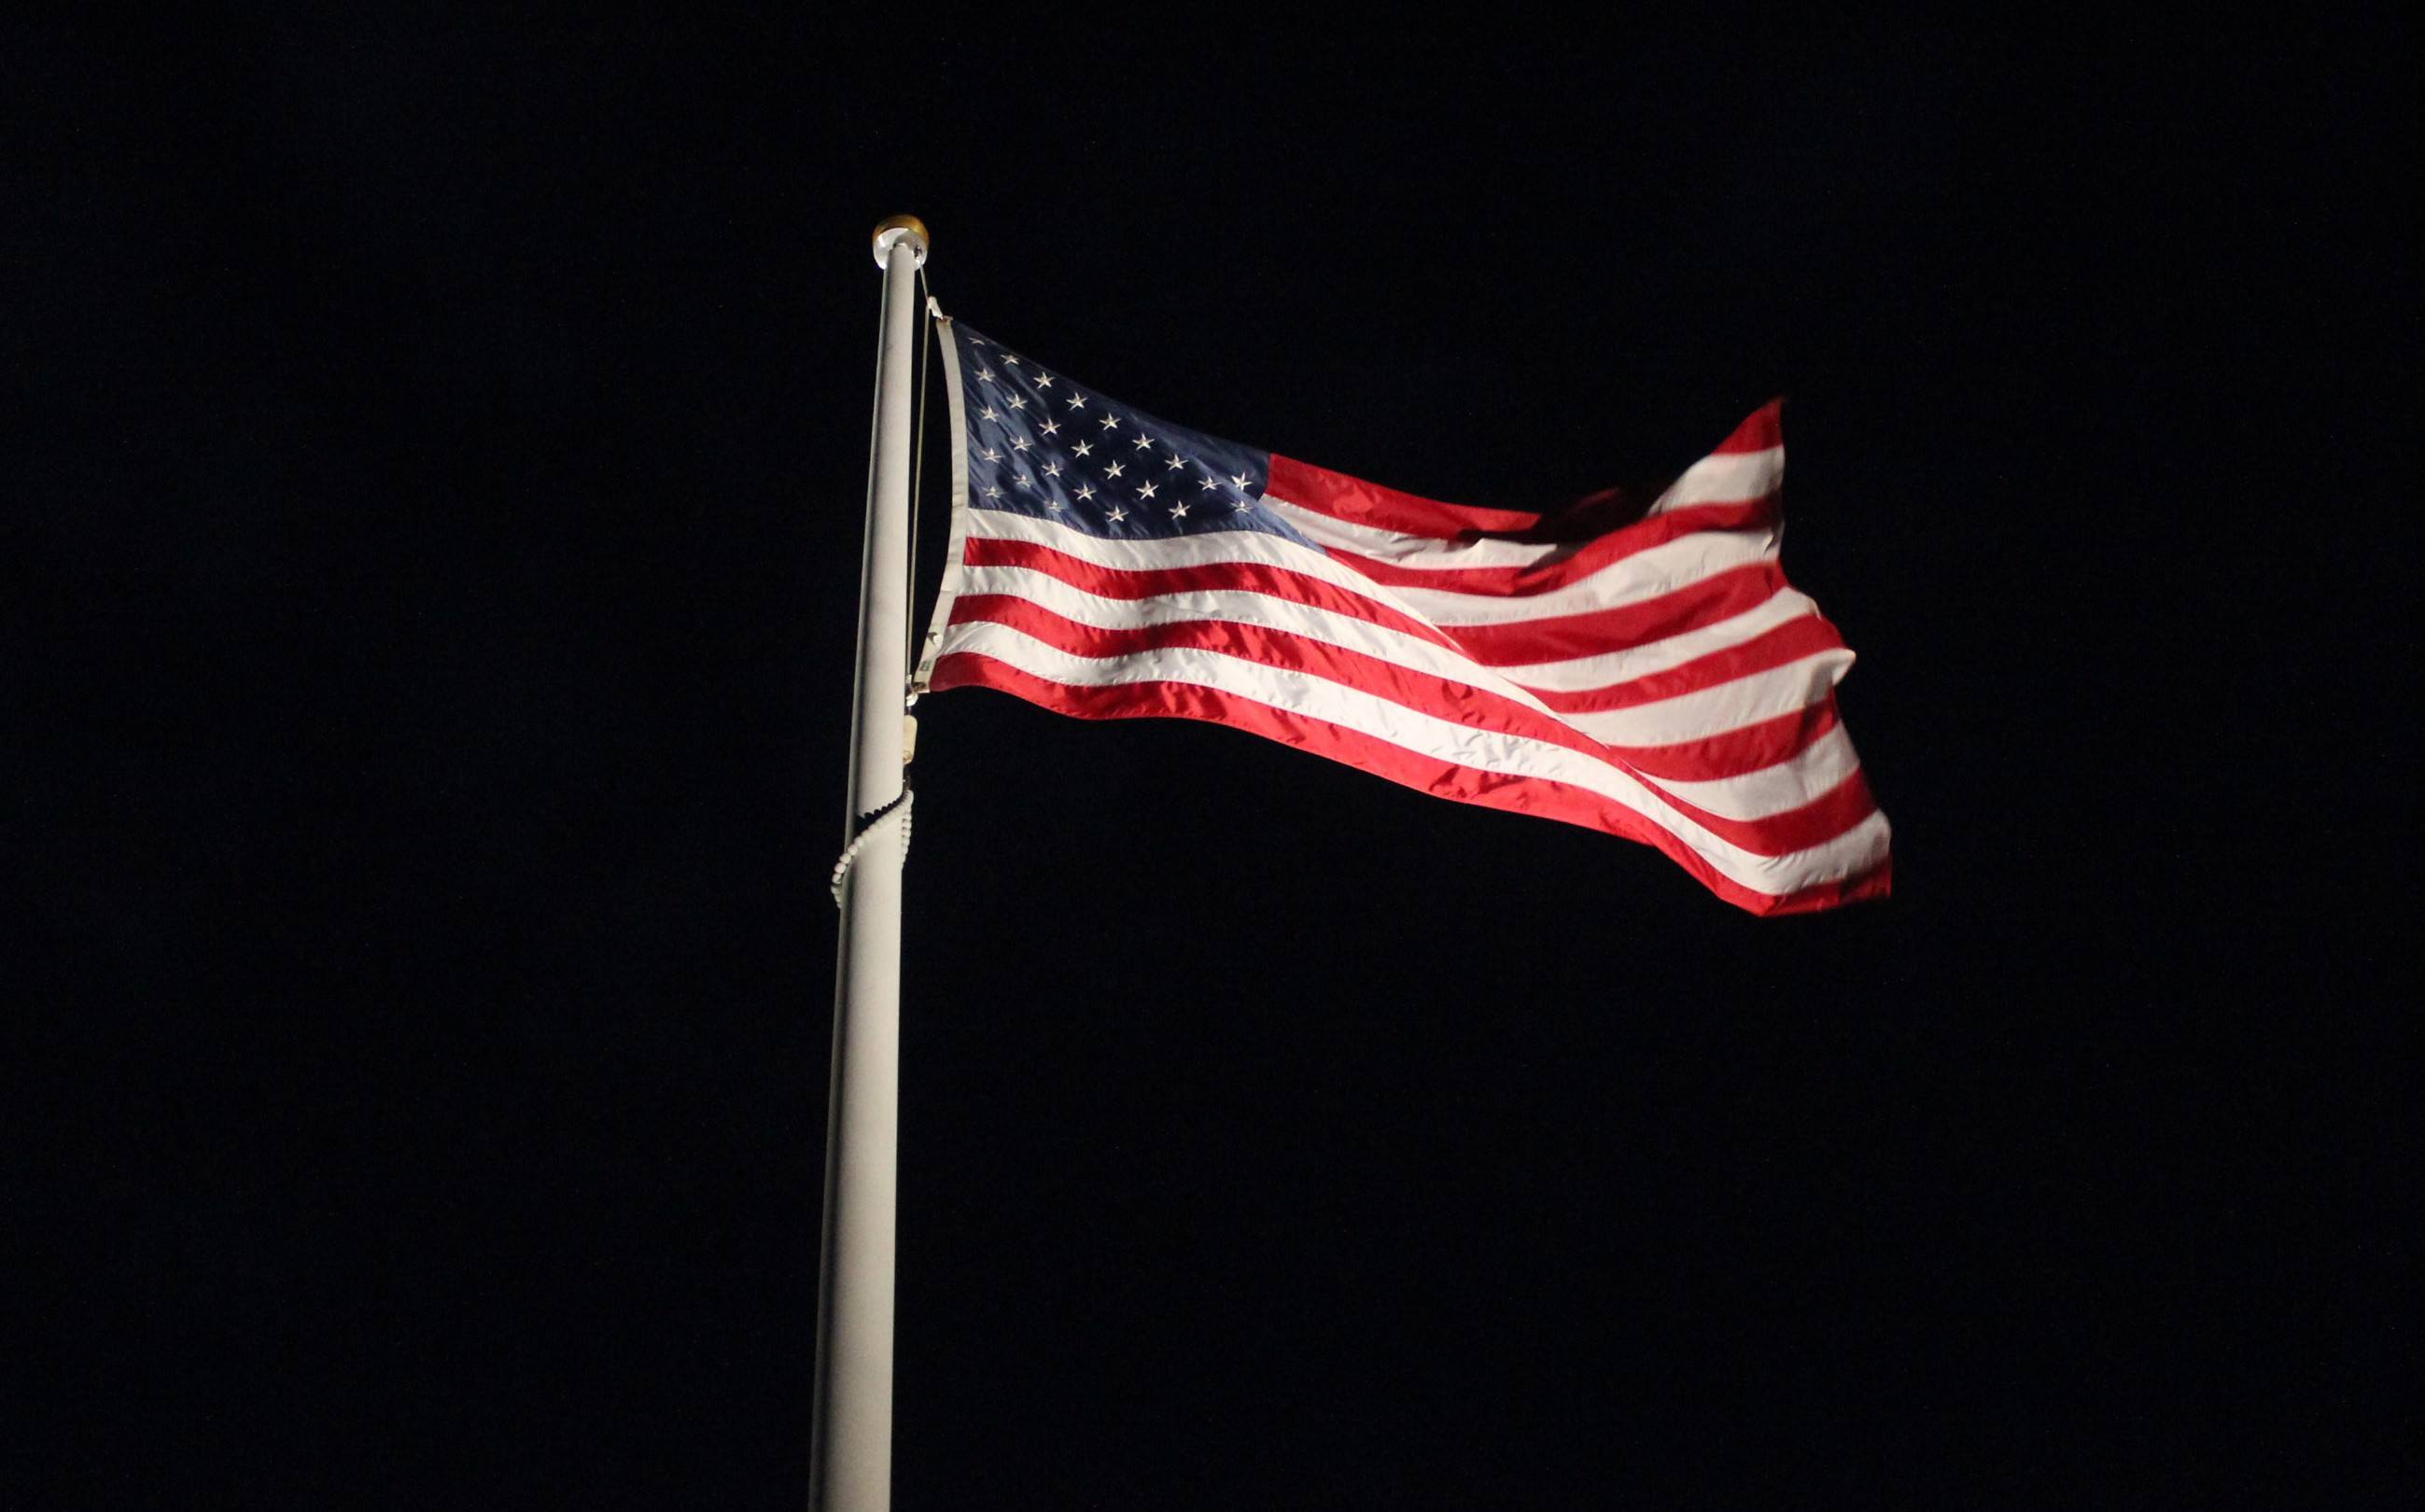 American Flag Wallpaper 046